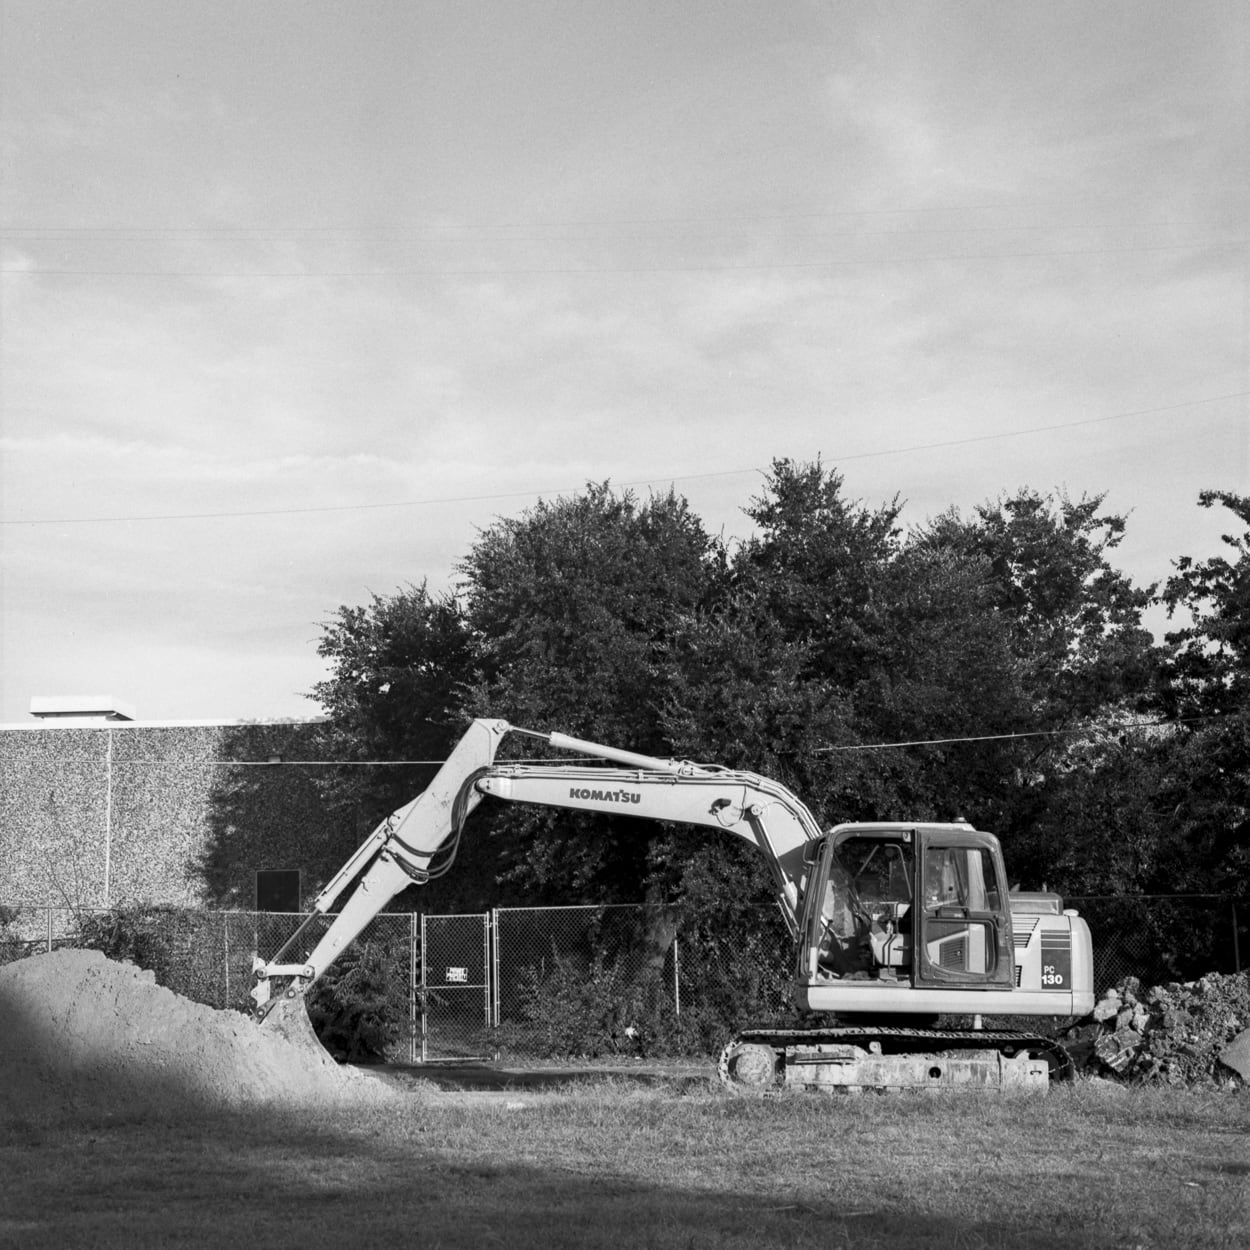 An excavator clearing a plot of land